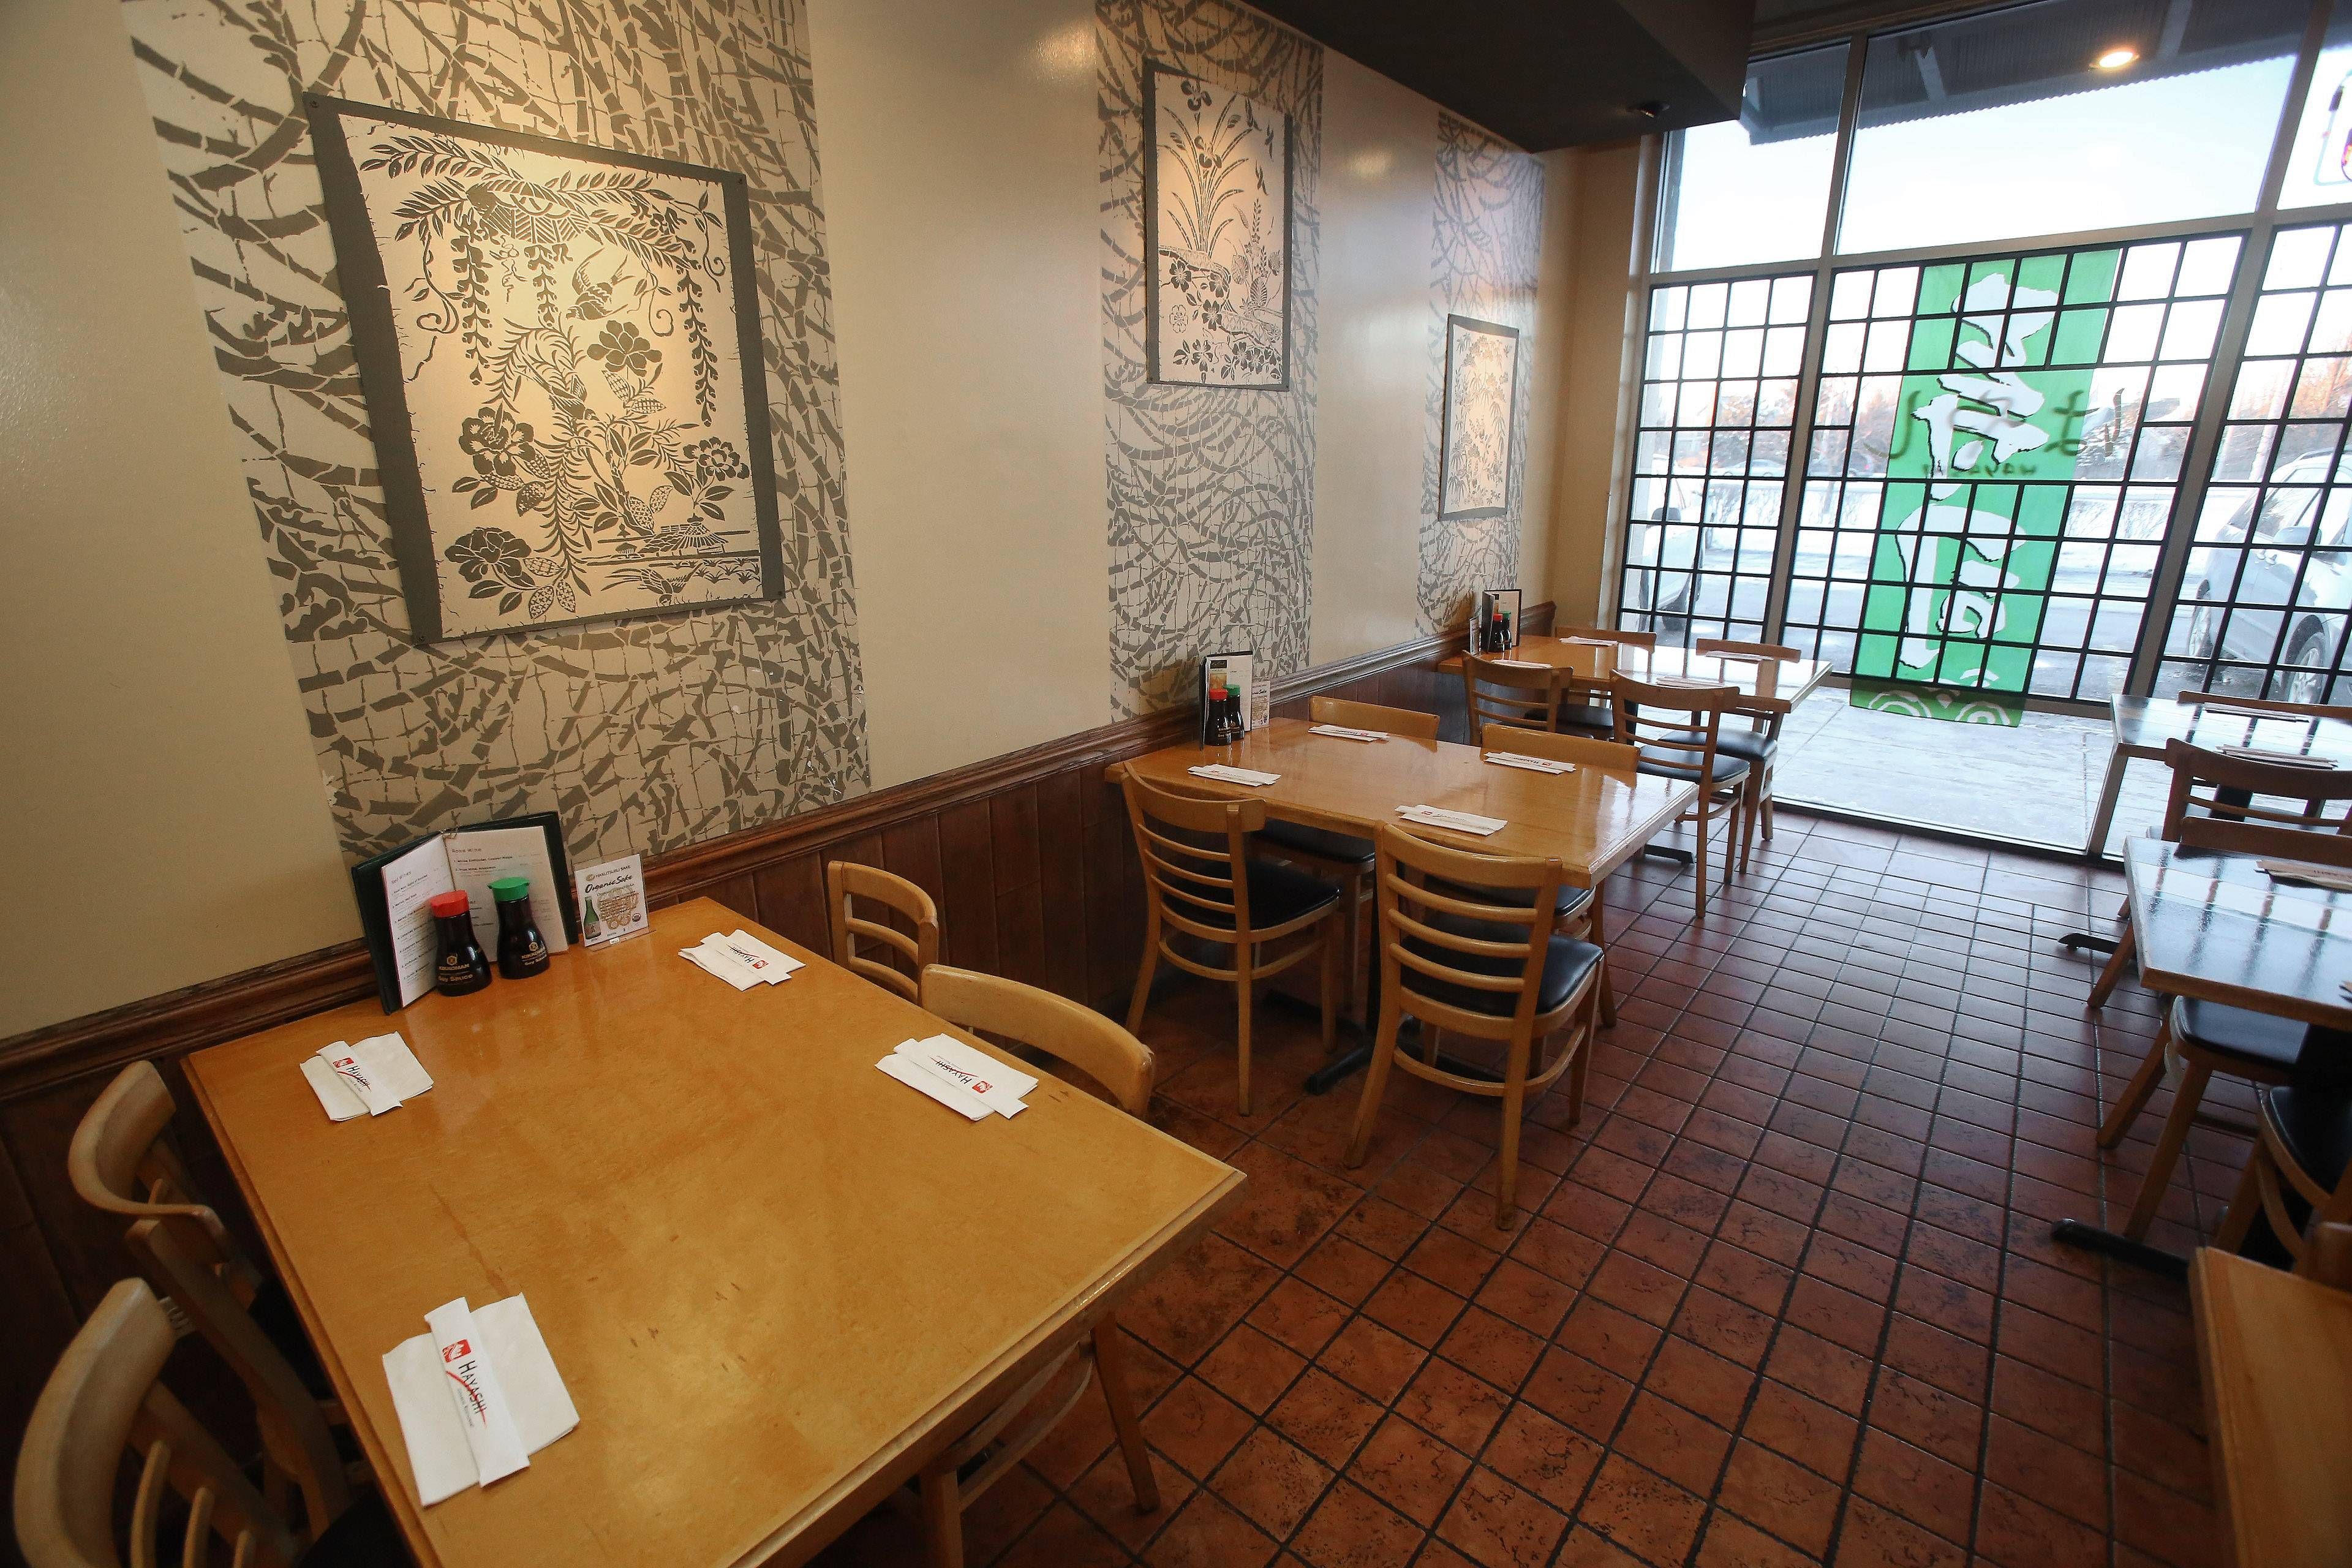 Dining room of Hayashi Japanese Restaurant in Gurnee owned by Inha Kim.